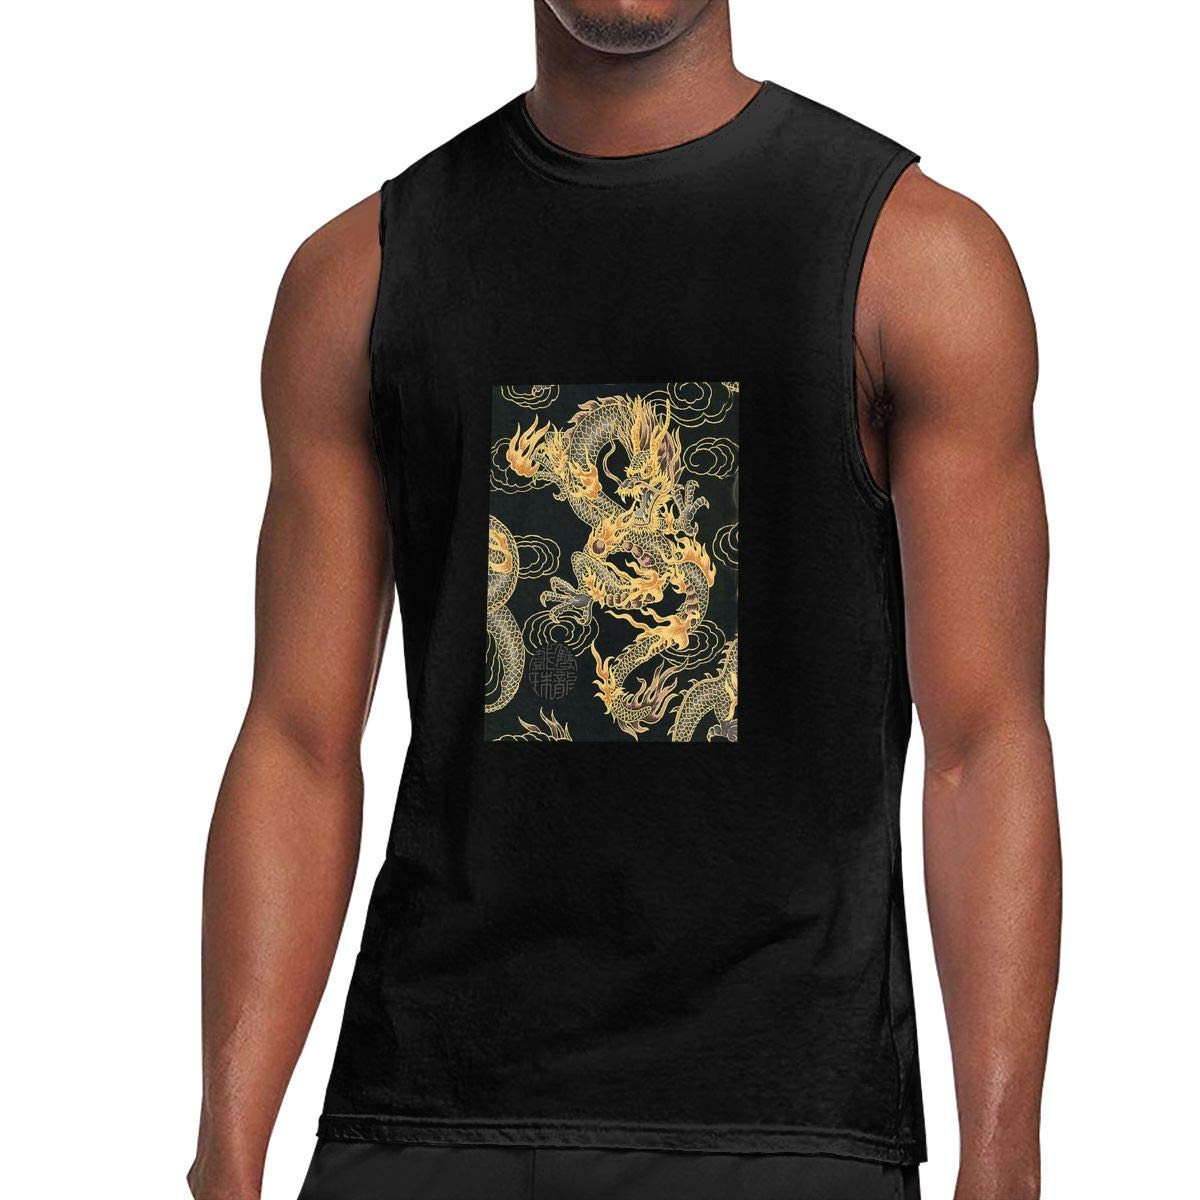 S Sleeveless T Shirts Chinese Dragon Workout Tank Tops Gym Bodybuilding Tshirts Black